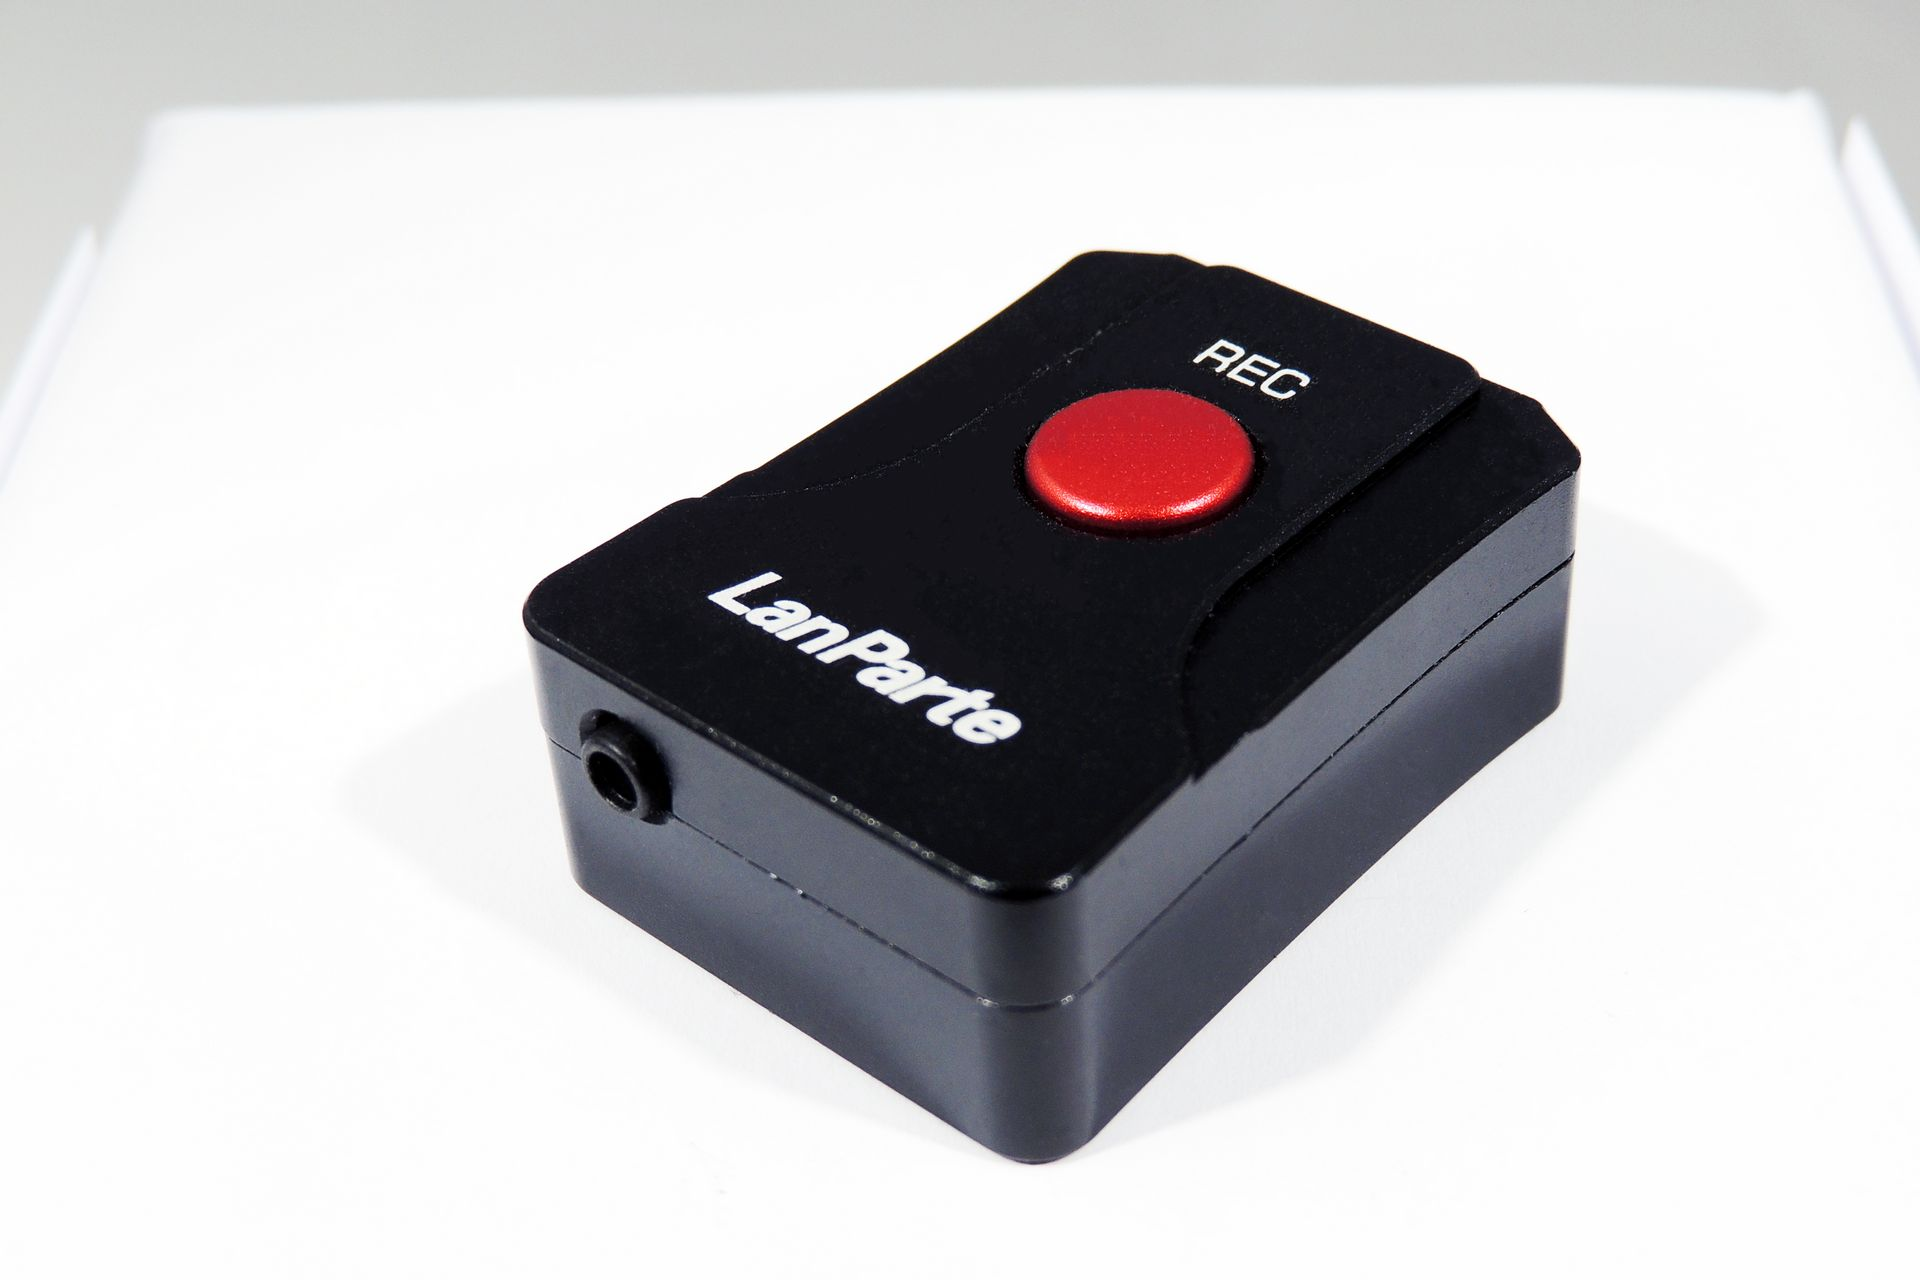 Lanparte LANC-02 remote RECORD / STOP for sale at Plasma Music